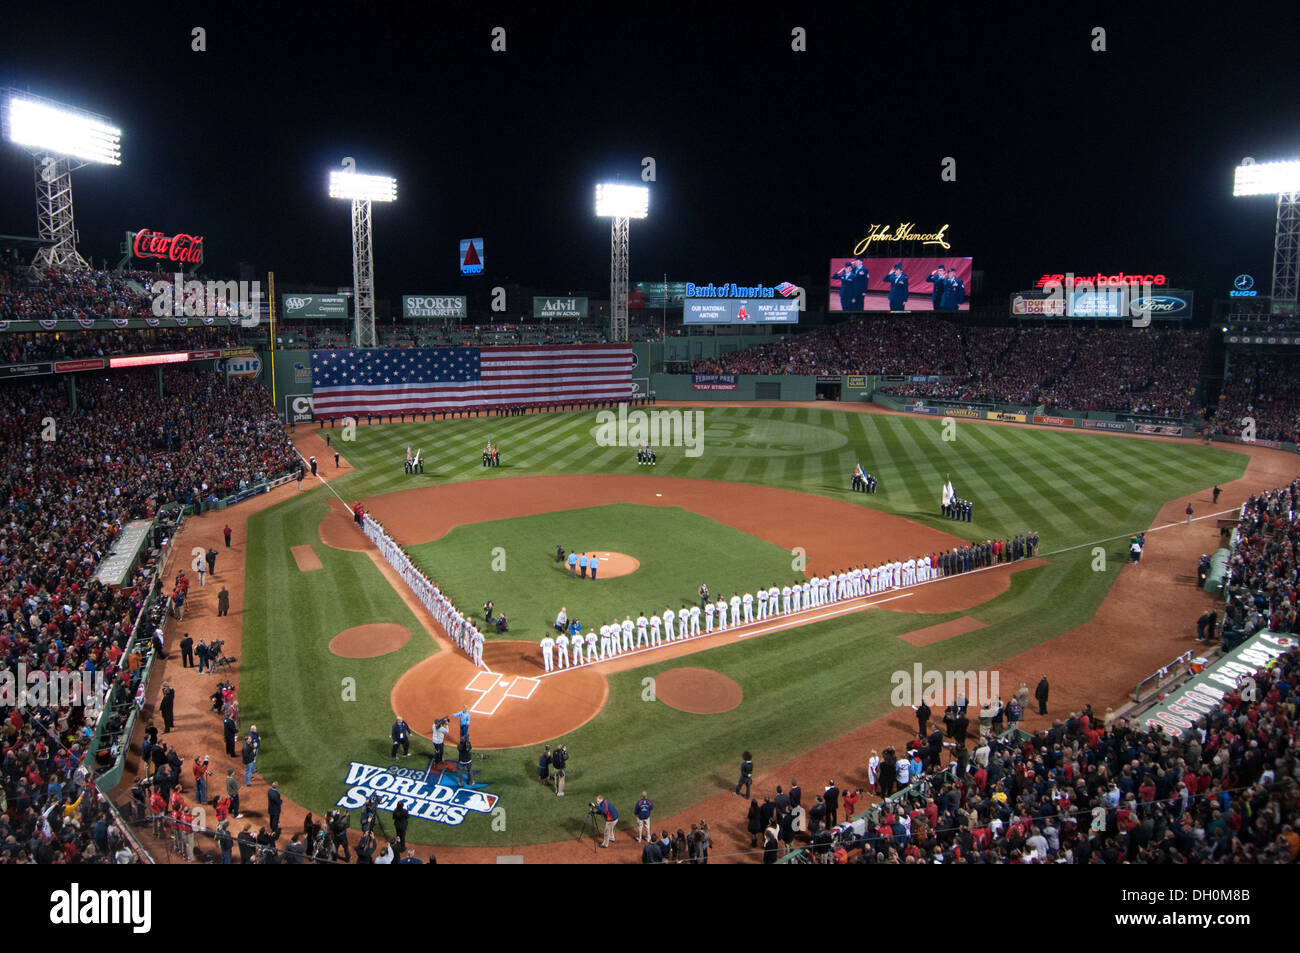 Airmen from Hanscom Air Force Base, also captured on the center-field Jumbotron, line the flag-draped left-field wall at Fenway - Stock Image